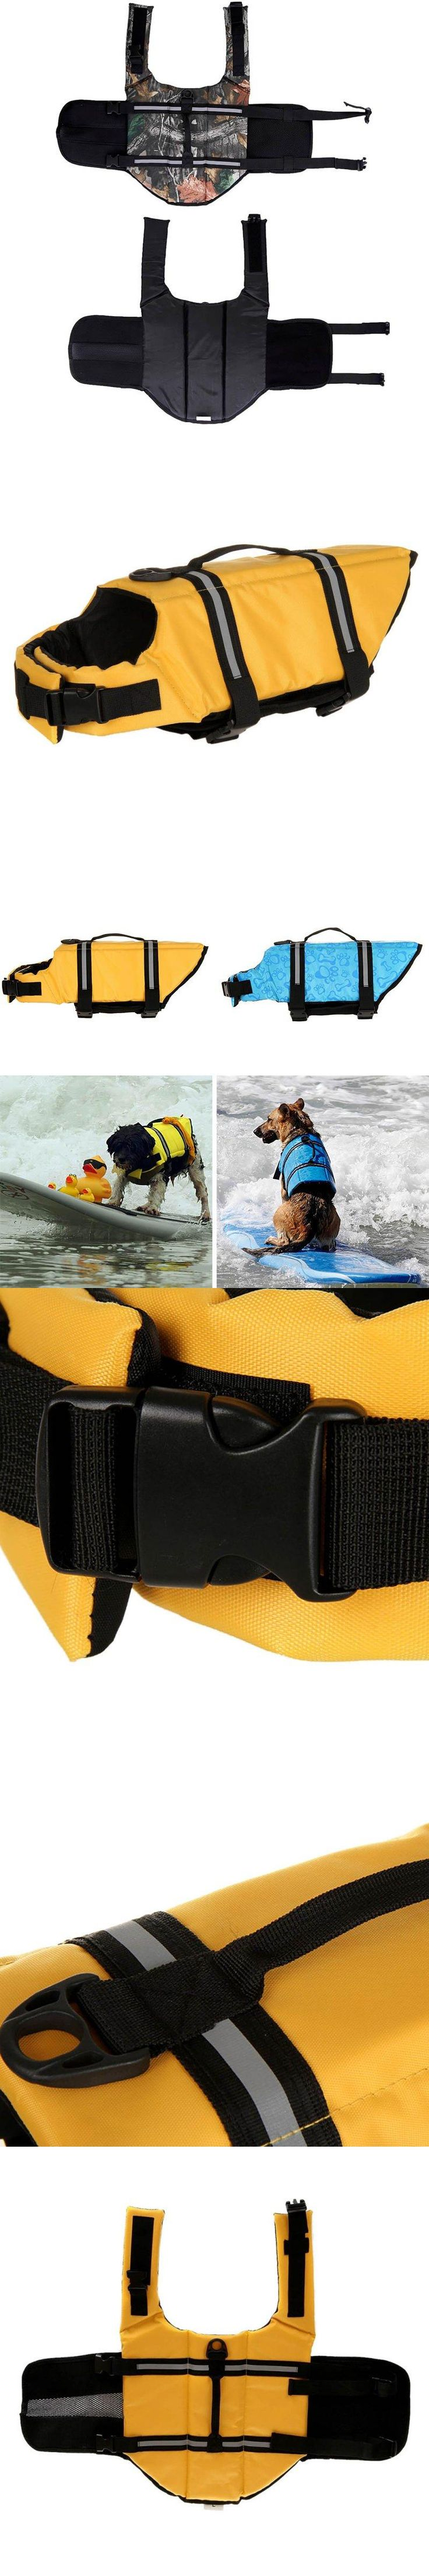 5 Color Oxford Breathable Mesh Pet Dog Life Jacket Summer Dog Swimwear Puppy Life Vest Safety Clothes XS-XL dog coats 2017